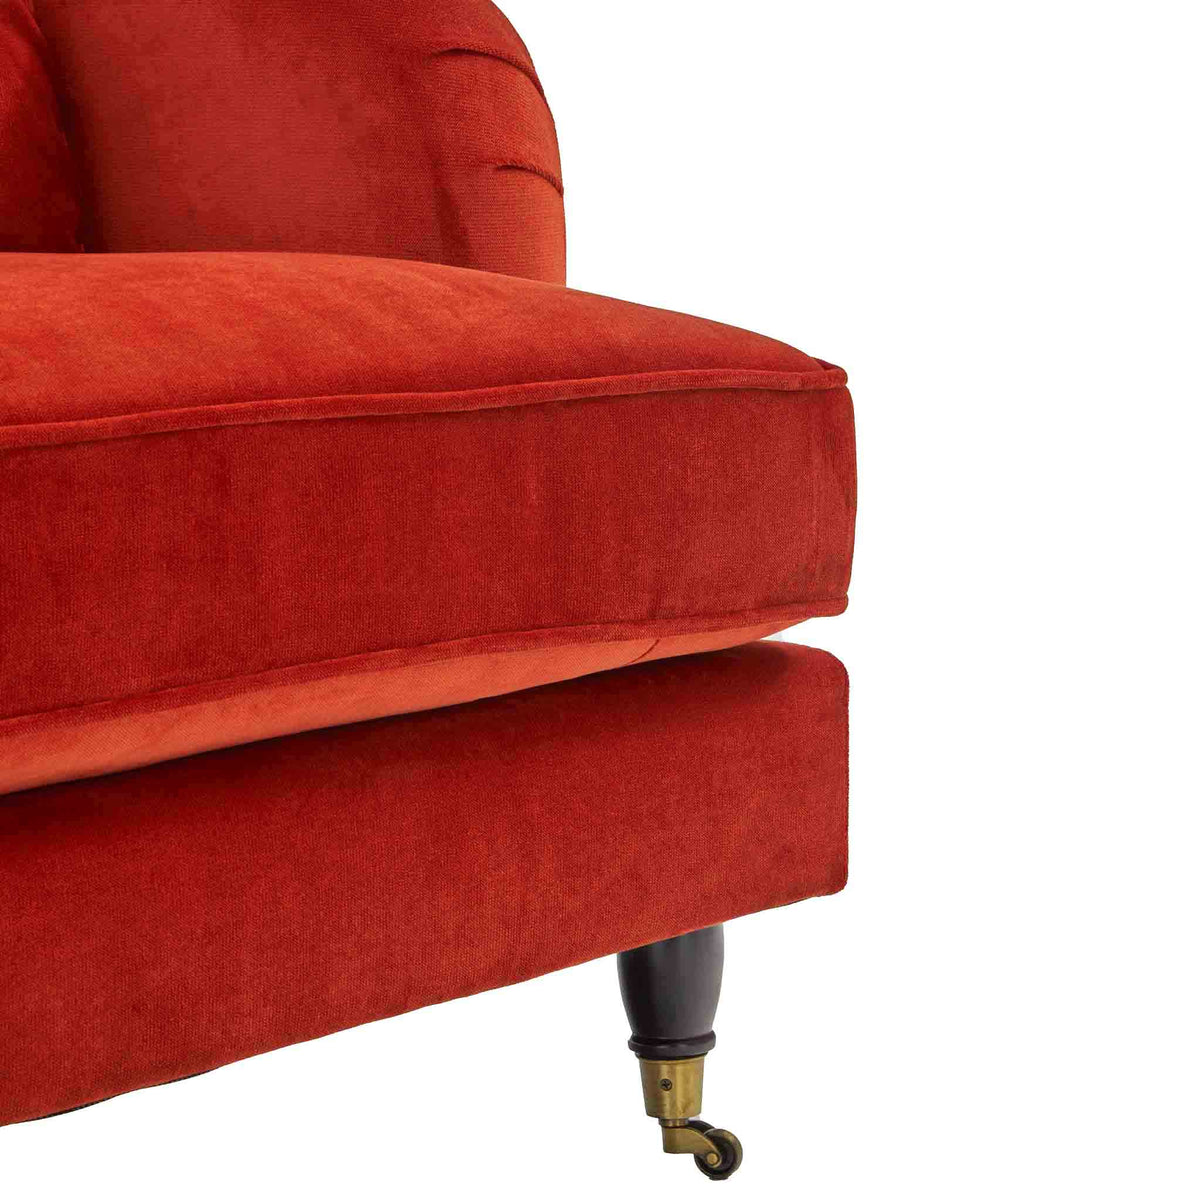 close up of the turned legs on the Piper Apricot 2 Seater Sofa from Roseland Furniture